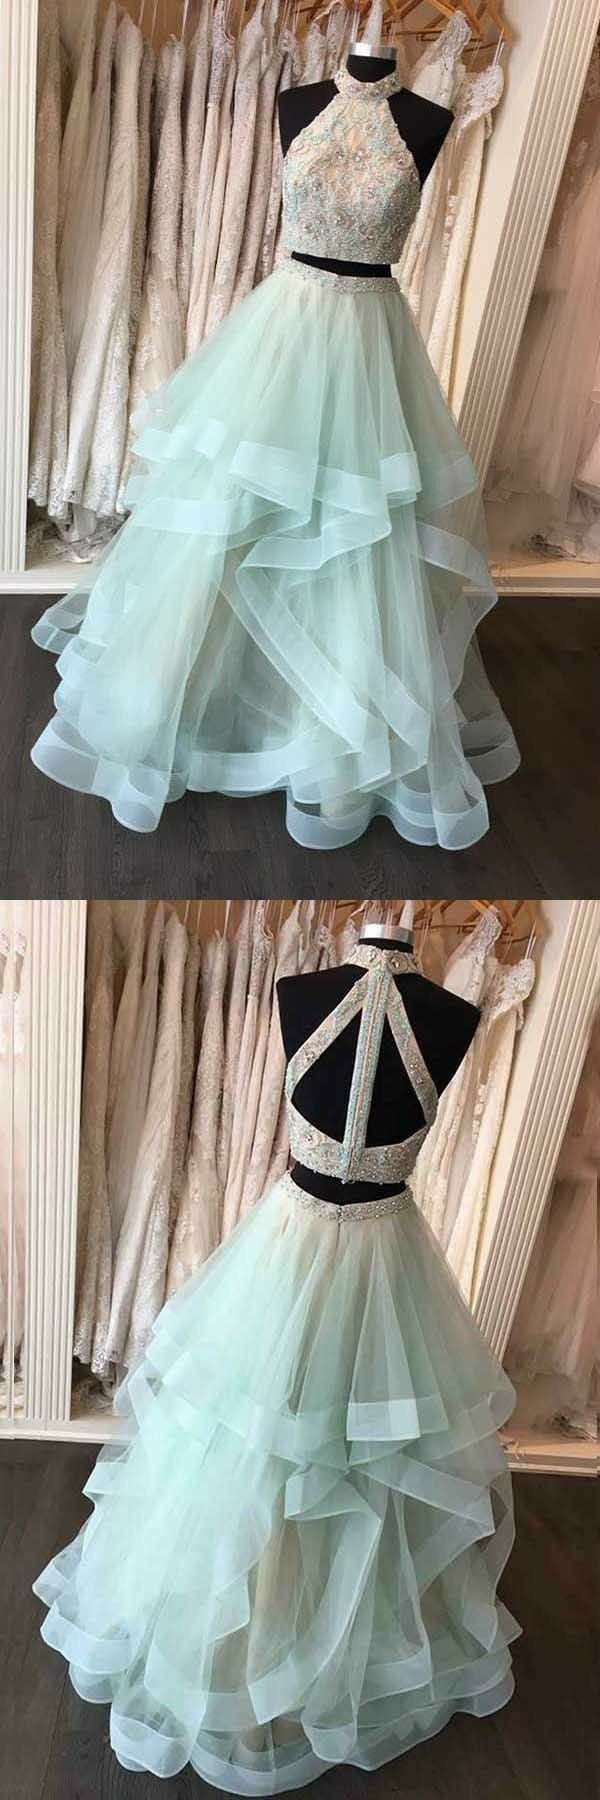 Pin by al on Dresses   Pinterest   Prom, Homecoming and Long prom ...